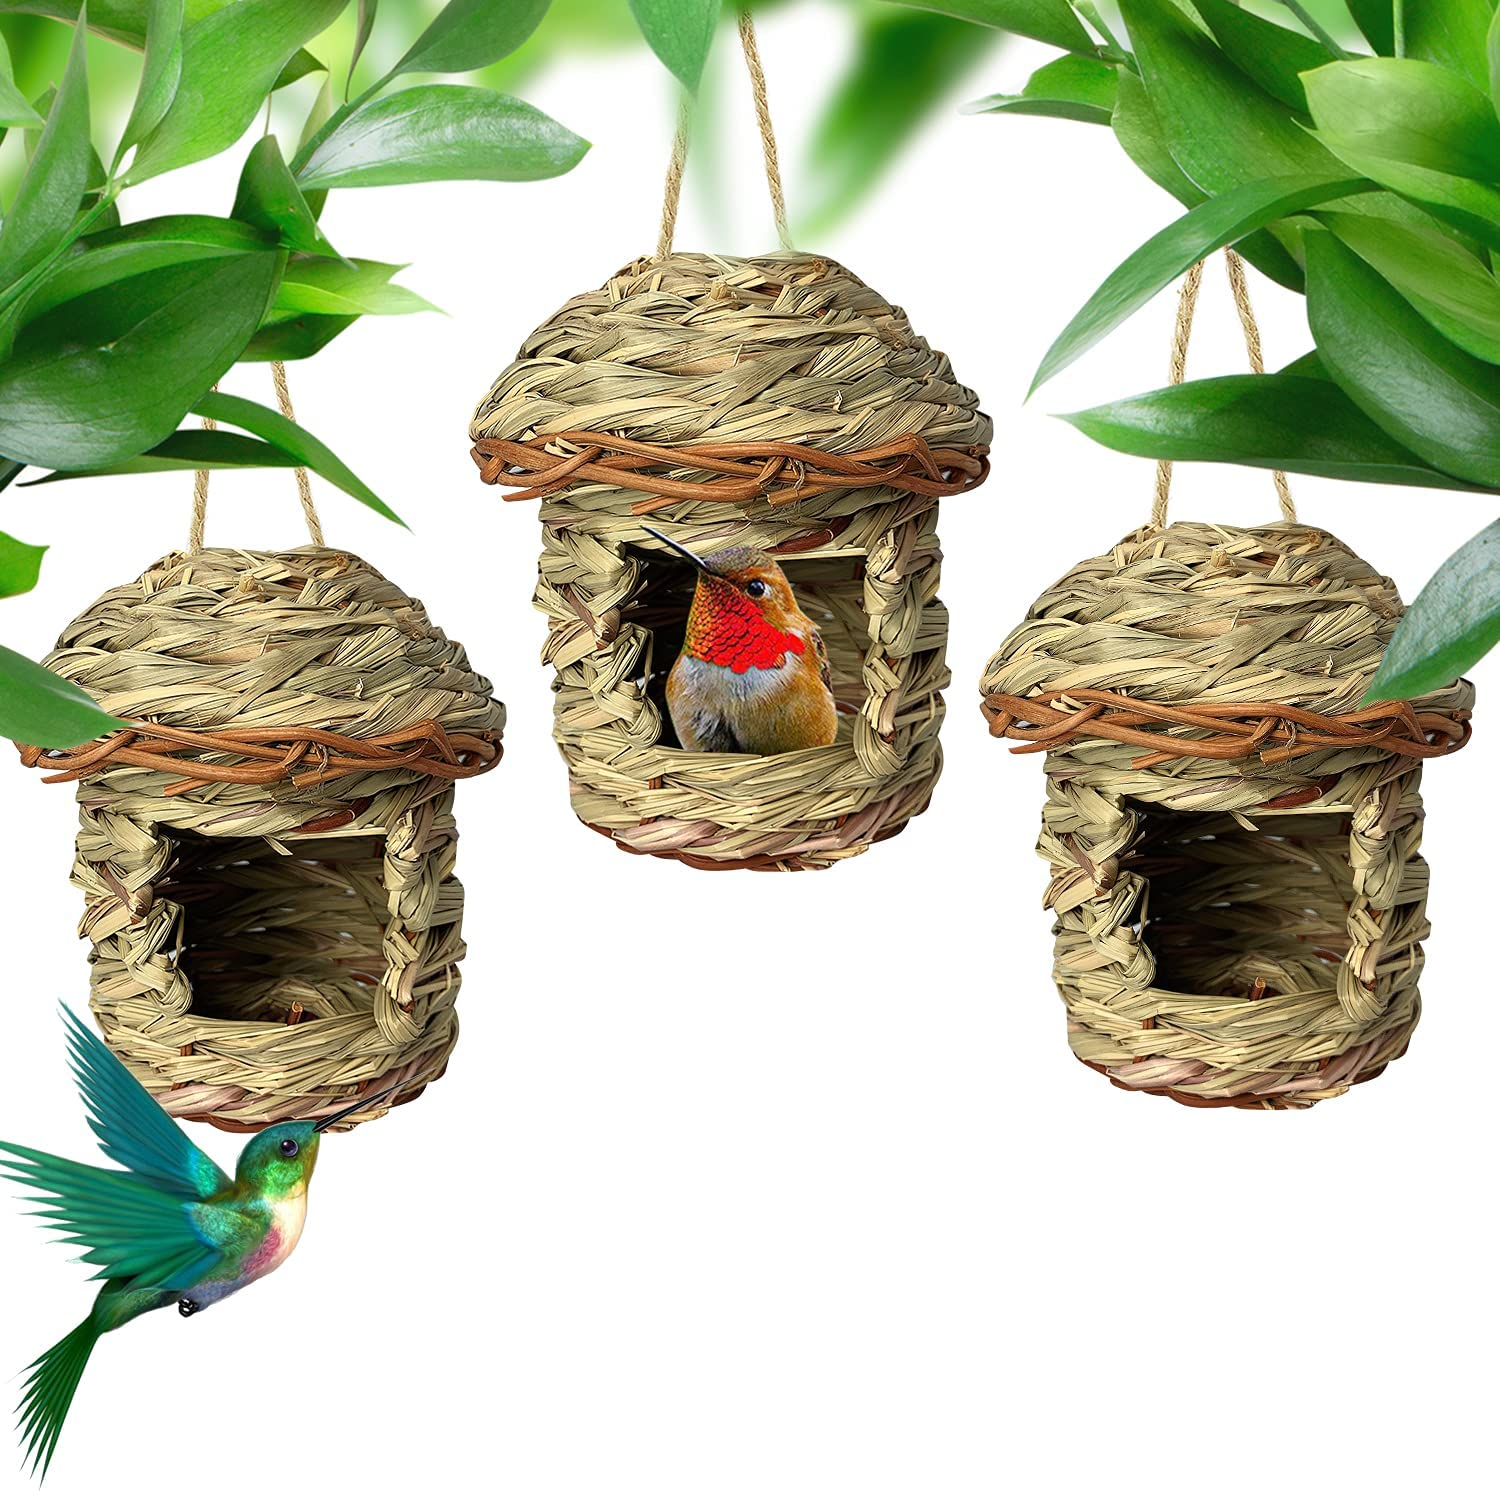 Sufford 3 Pack Hummingbird House Ranking TOP14 Grass Safety and trust Nest for Woven Bird Hand